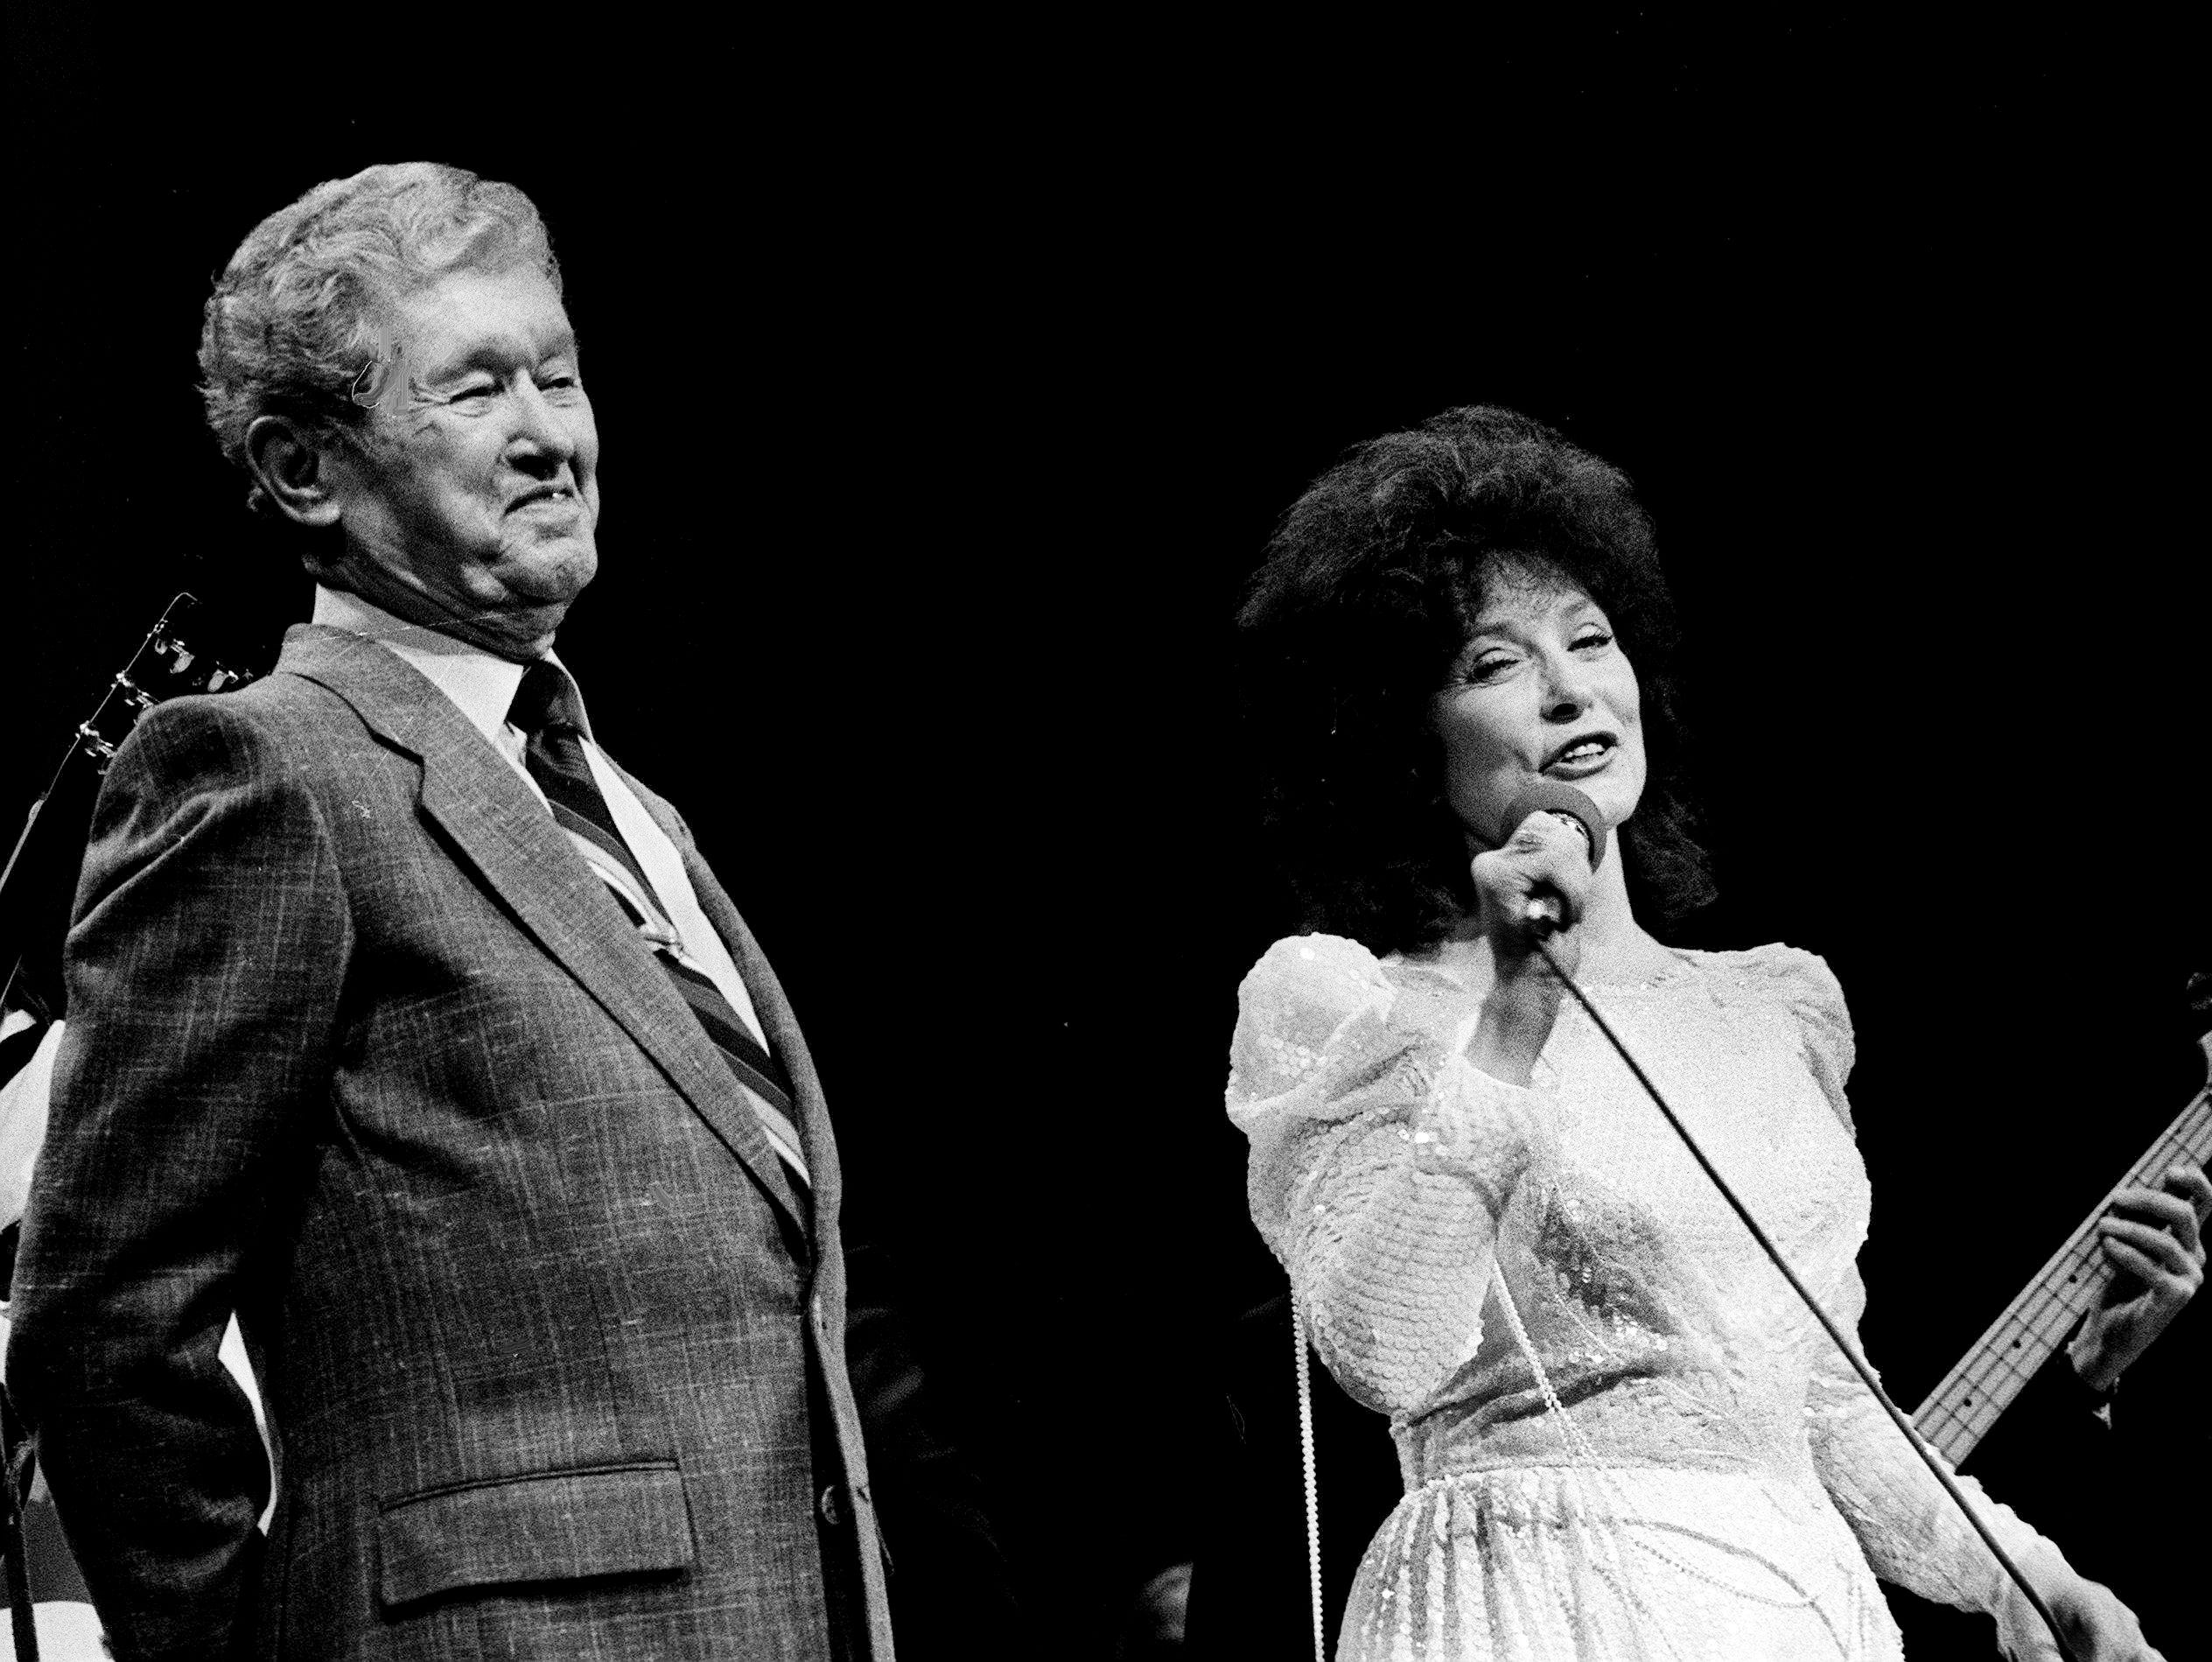 """Returning to the Grand Ole Opry stage Oct. 19, 1985 after an absence of four months, Roy Acuff, left, joins guest Loretta Lynn after he requested """"Coal Miner's Daughter"""" from her. A heart aliment had prevented the 82-year-old Acuff from performing."""